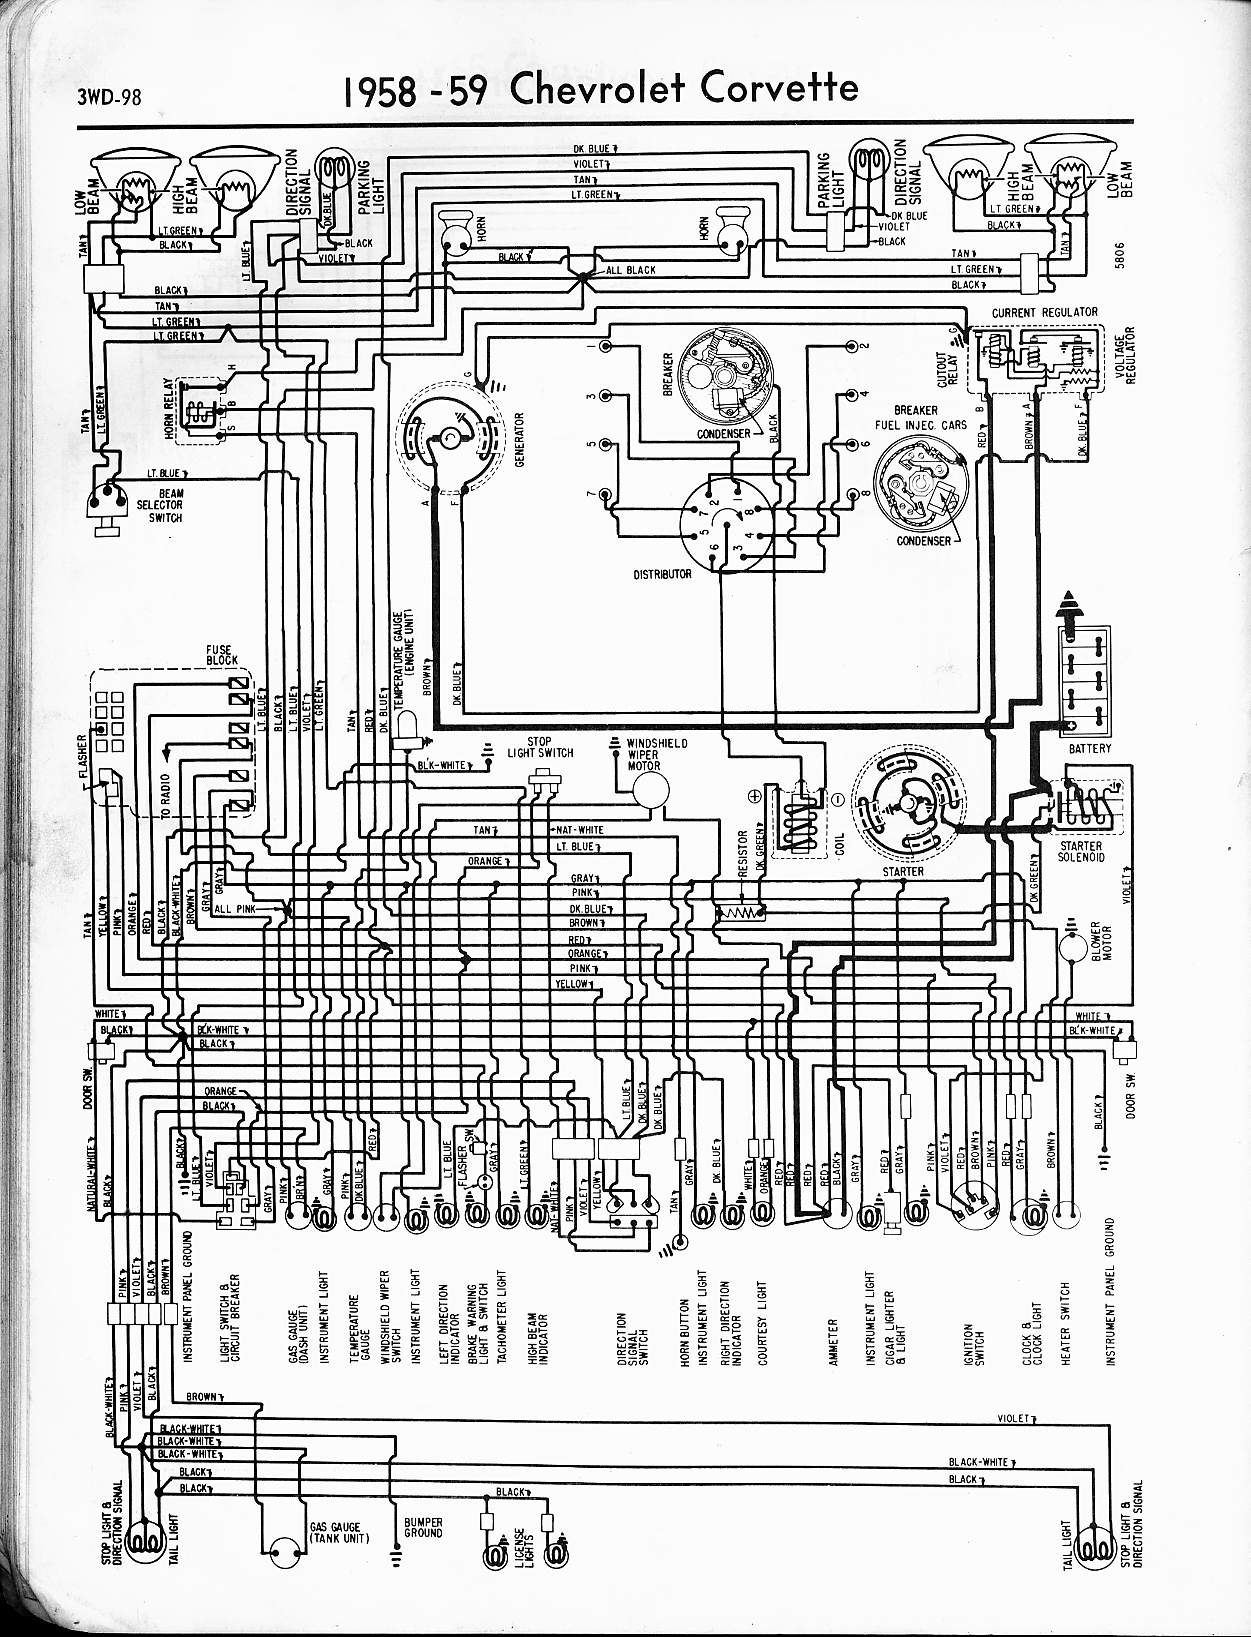 66 Mustang Wiring Online Real Diagram Engine Chevy Under Hood Pictures U2022 Rh Mapavick Co Uk Harness 1966